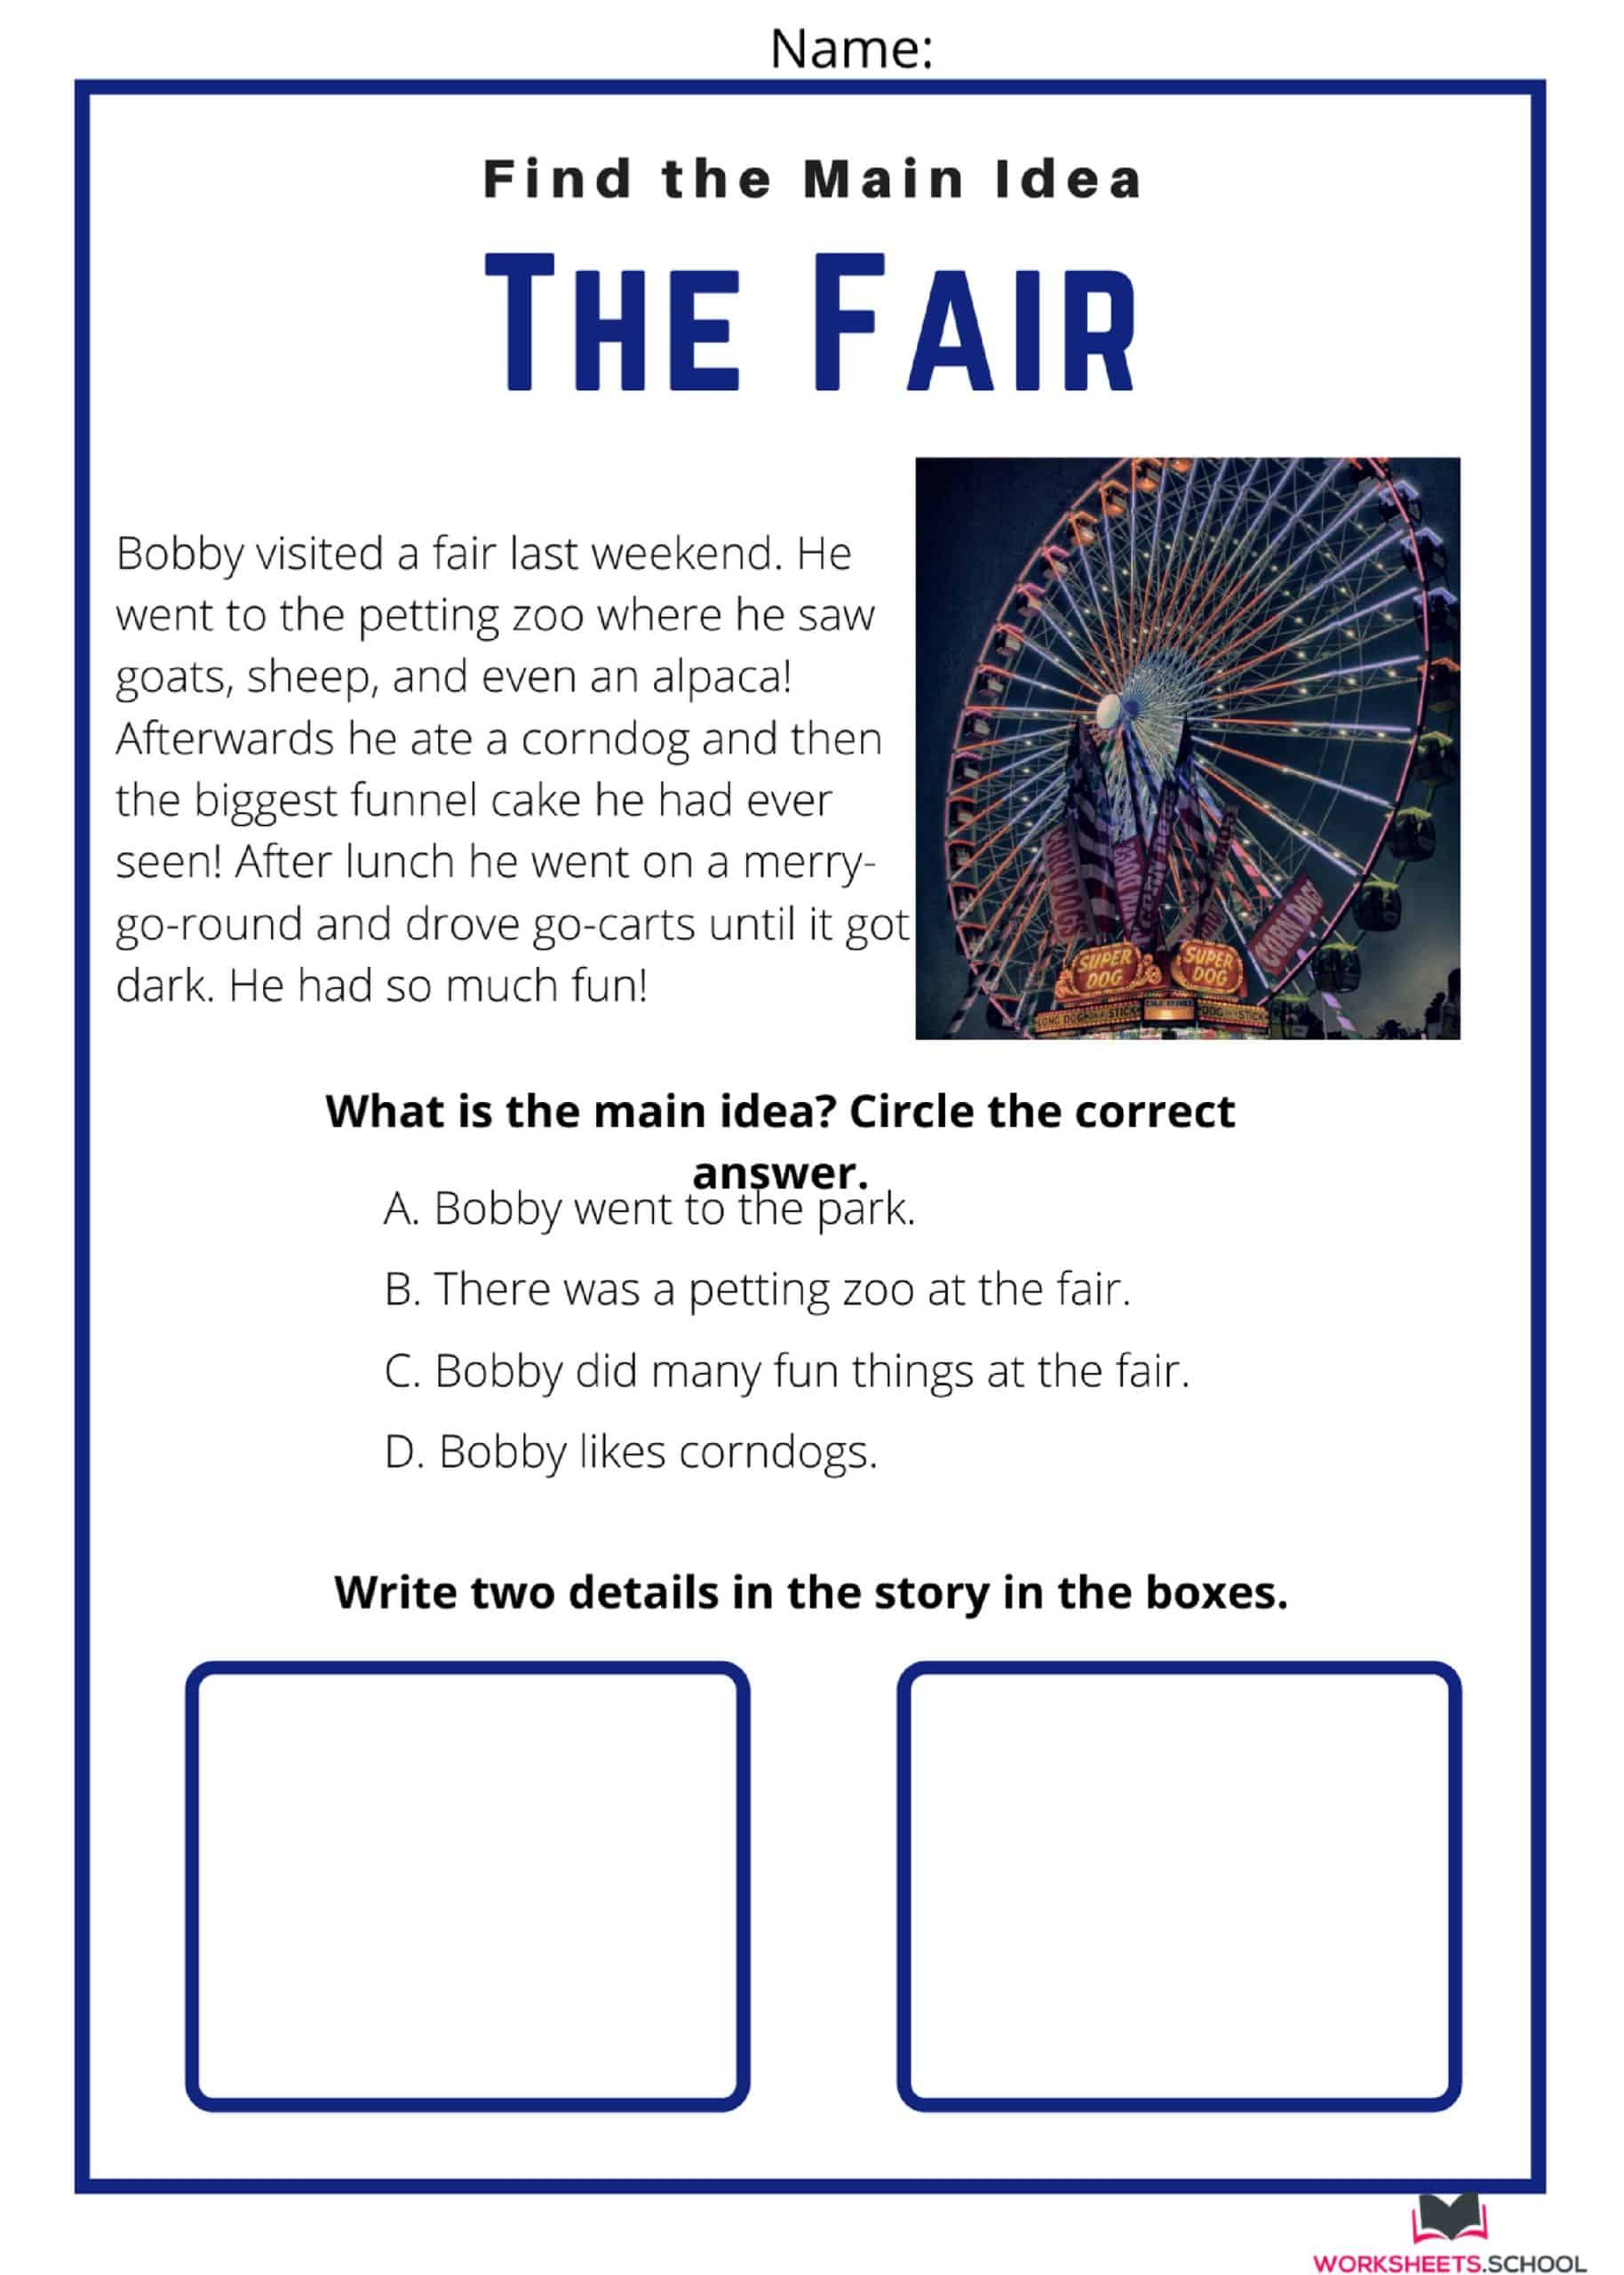 Main Idea Worksheet - The Fair